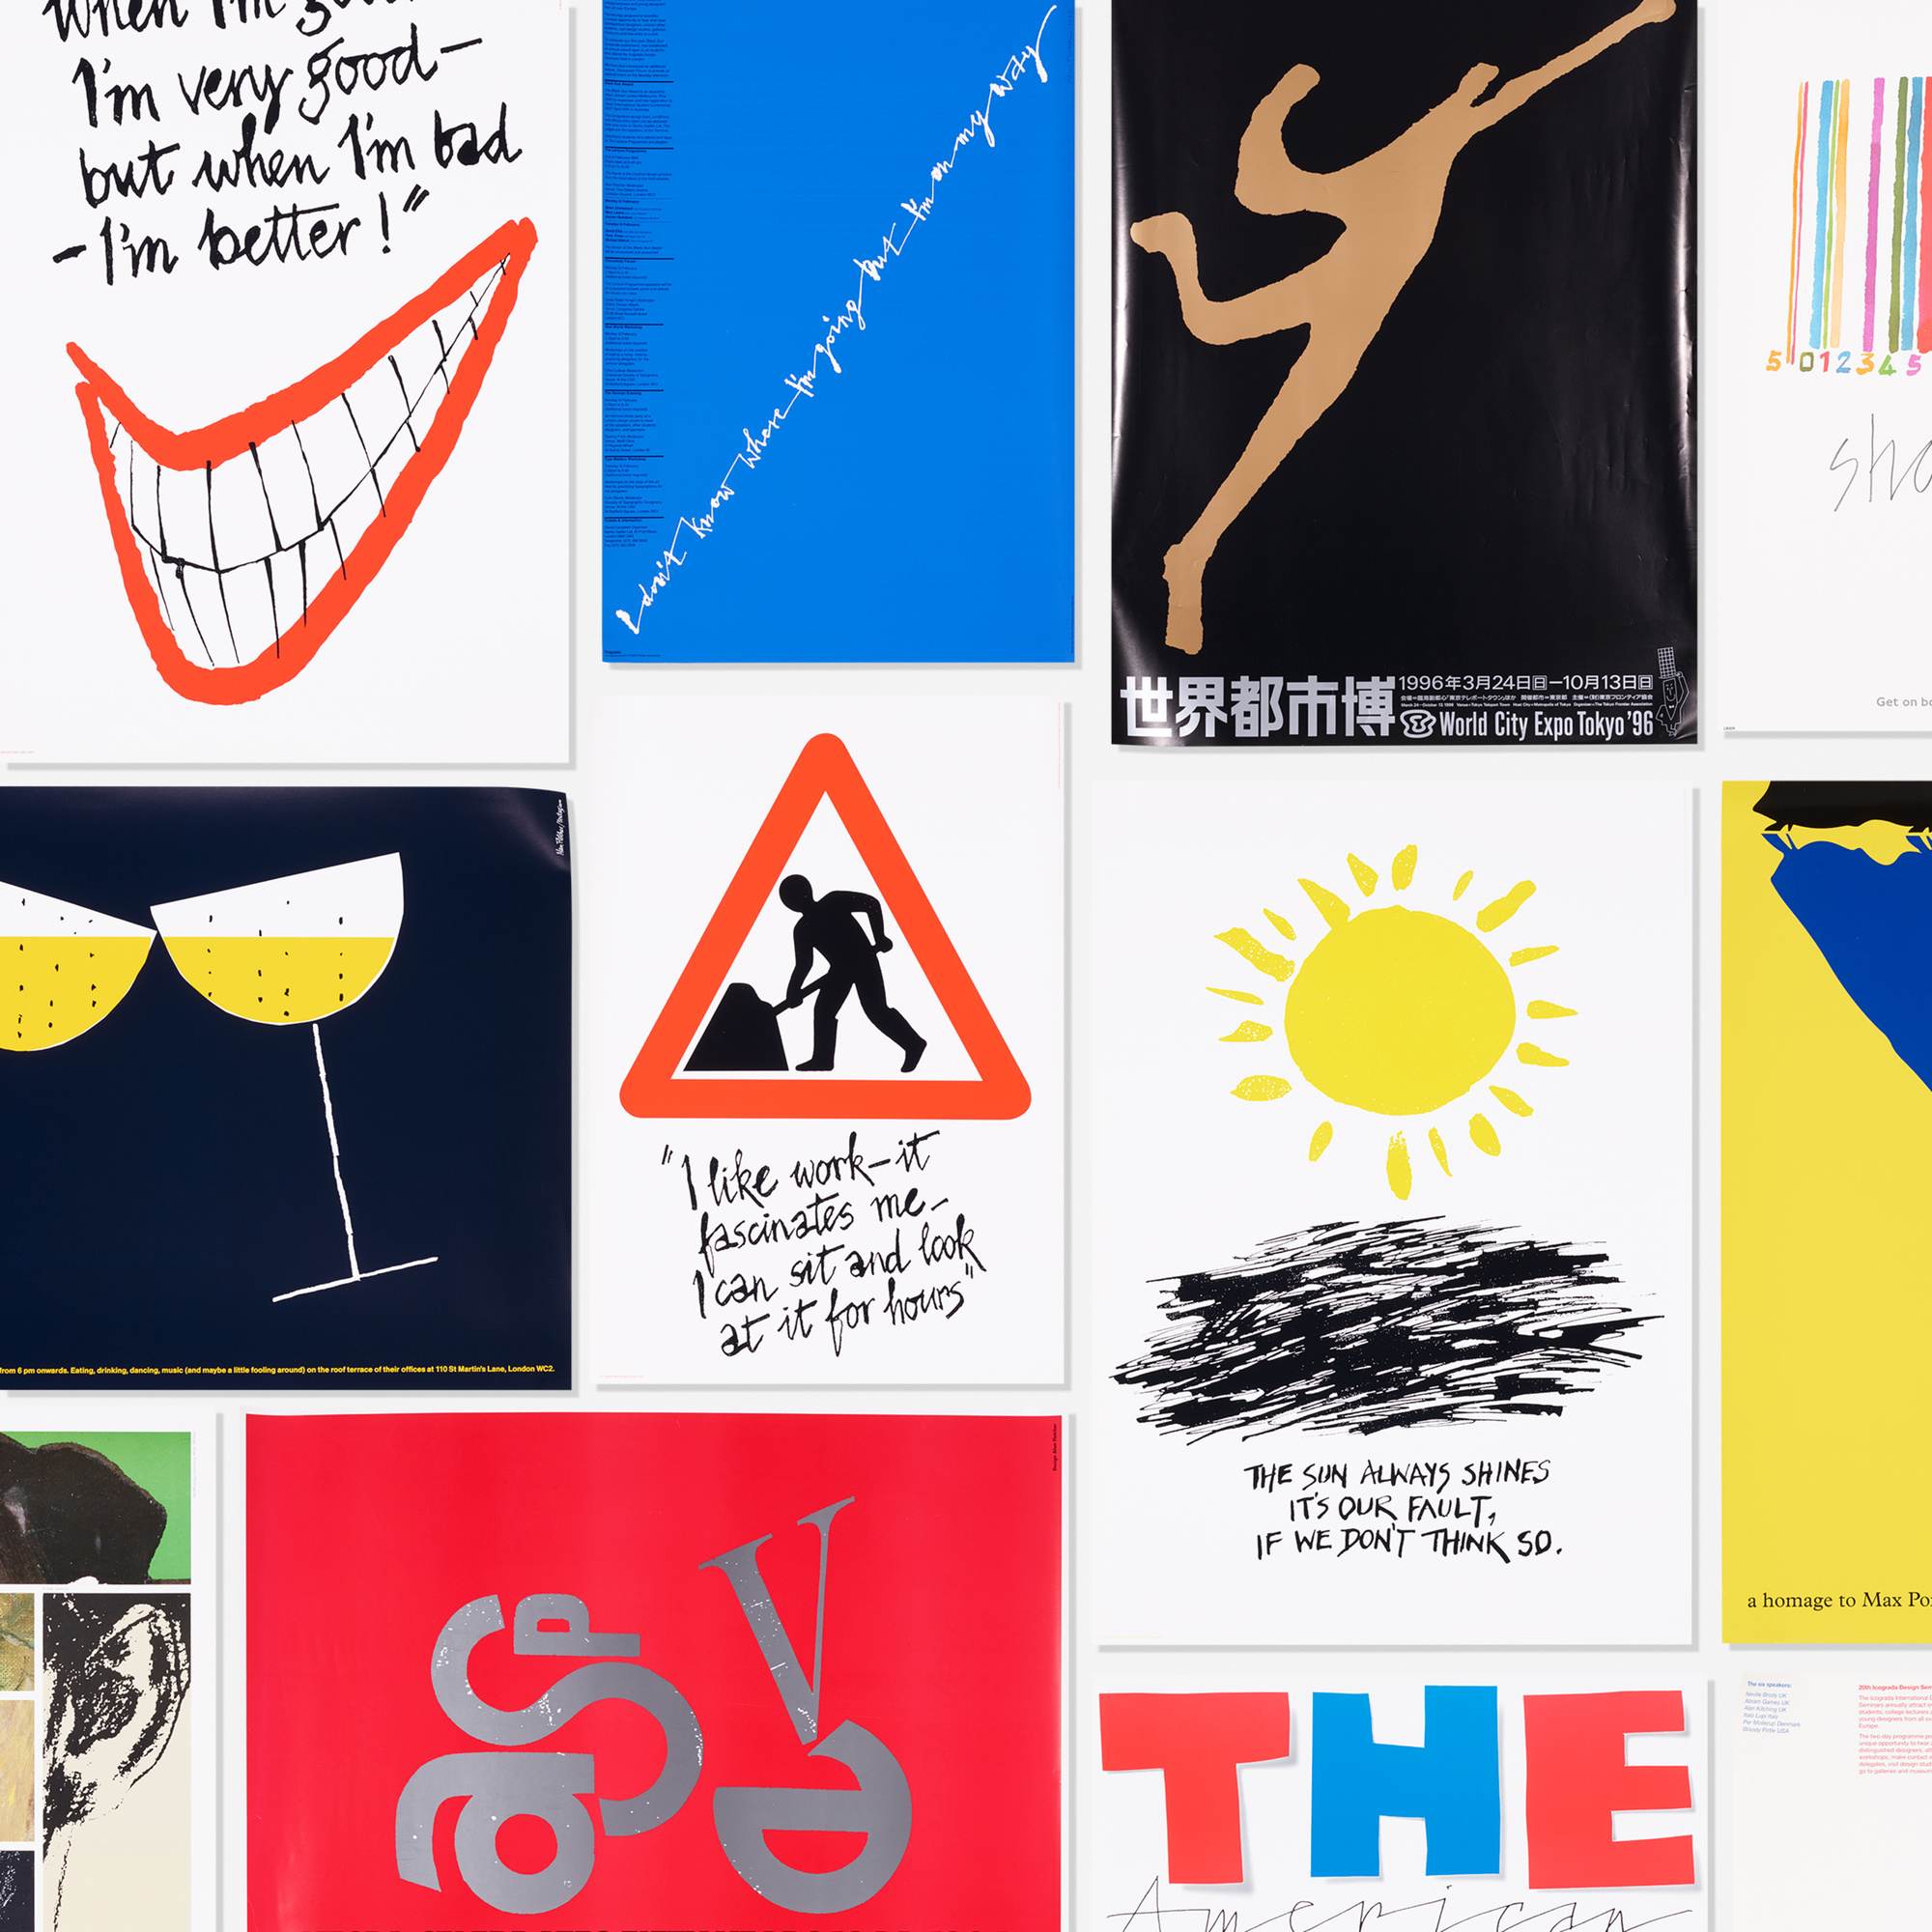 269: Alan Fletcher / collection of thirty-five graphic design posters (1 of 1)